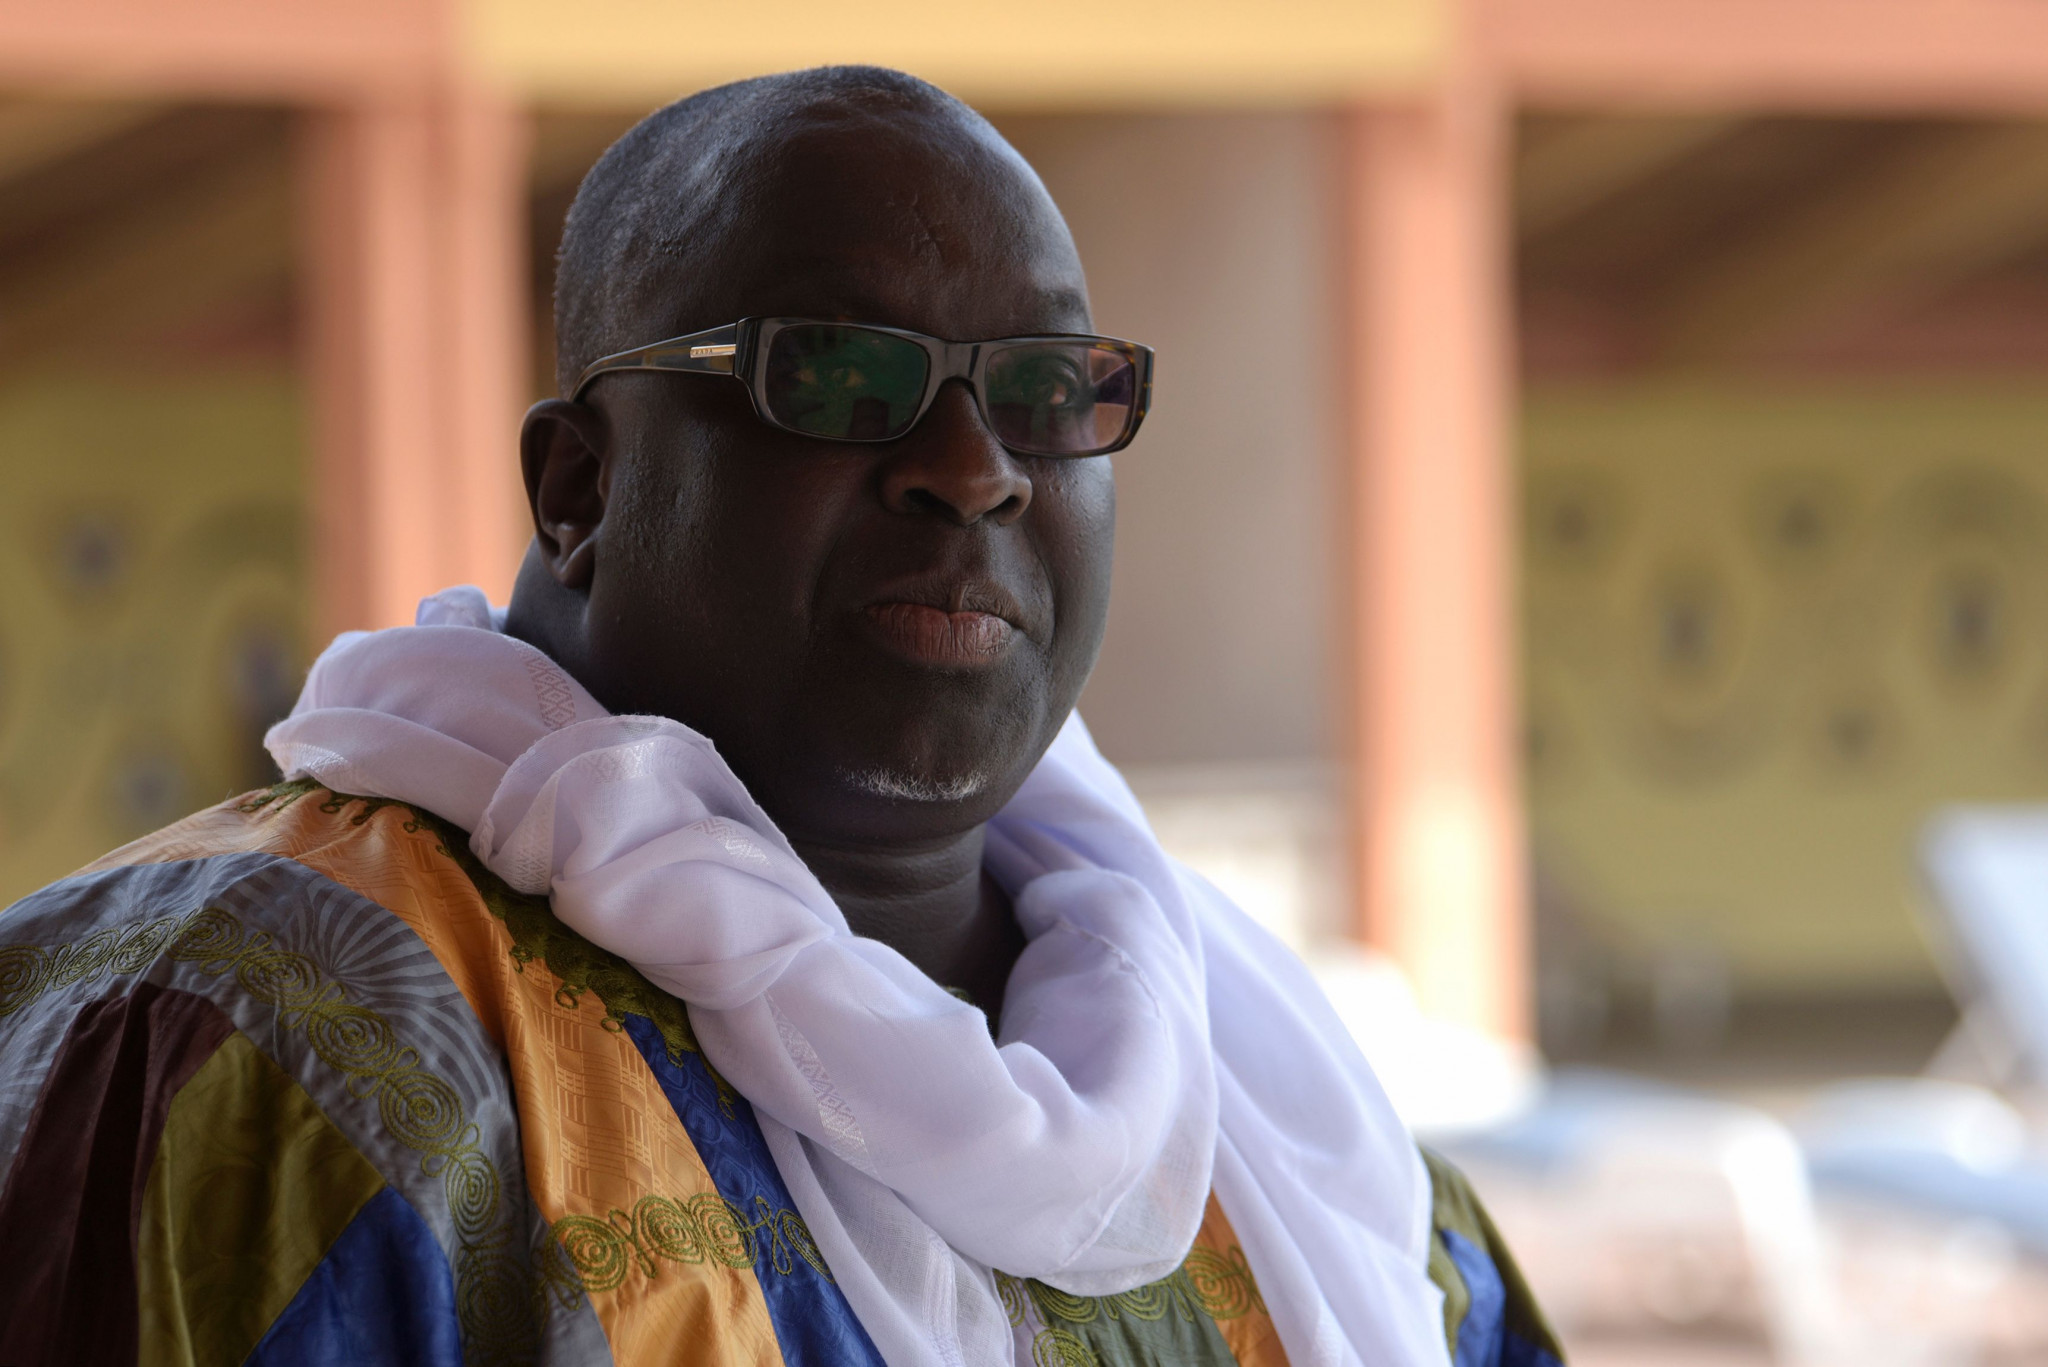 """Papa Massata Diack is accused of trying to """"lock-in"""" support for Tokyo during the final vote in the 2020 race ©Getty Images"""